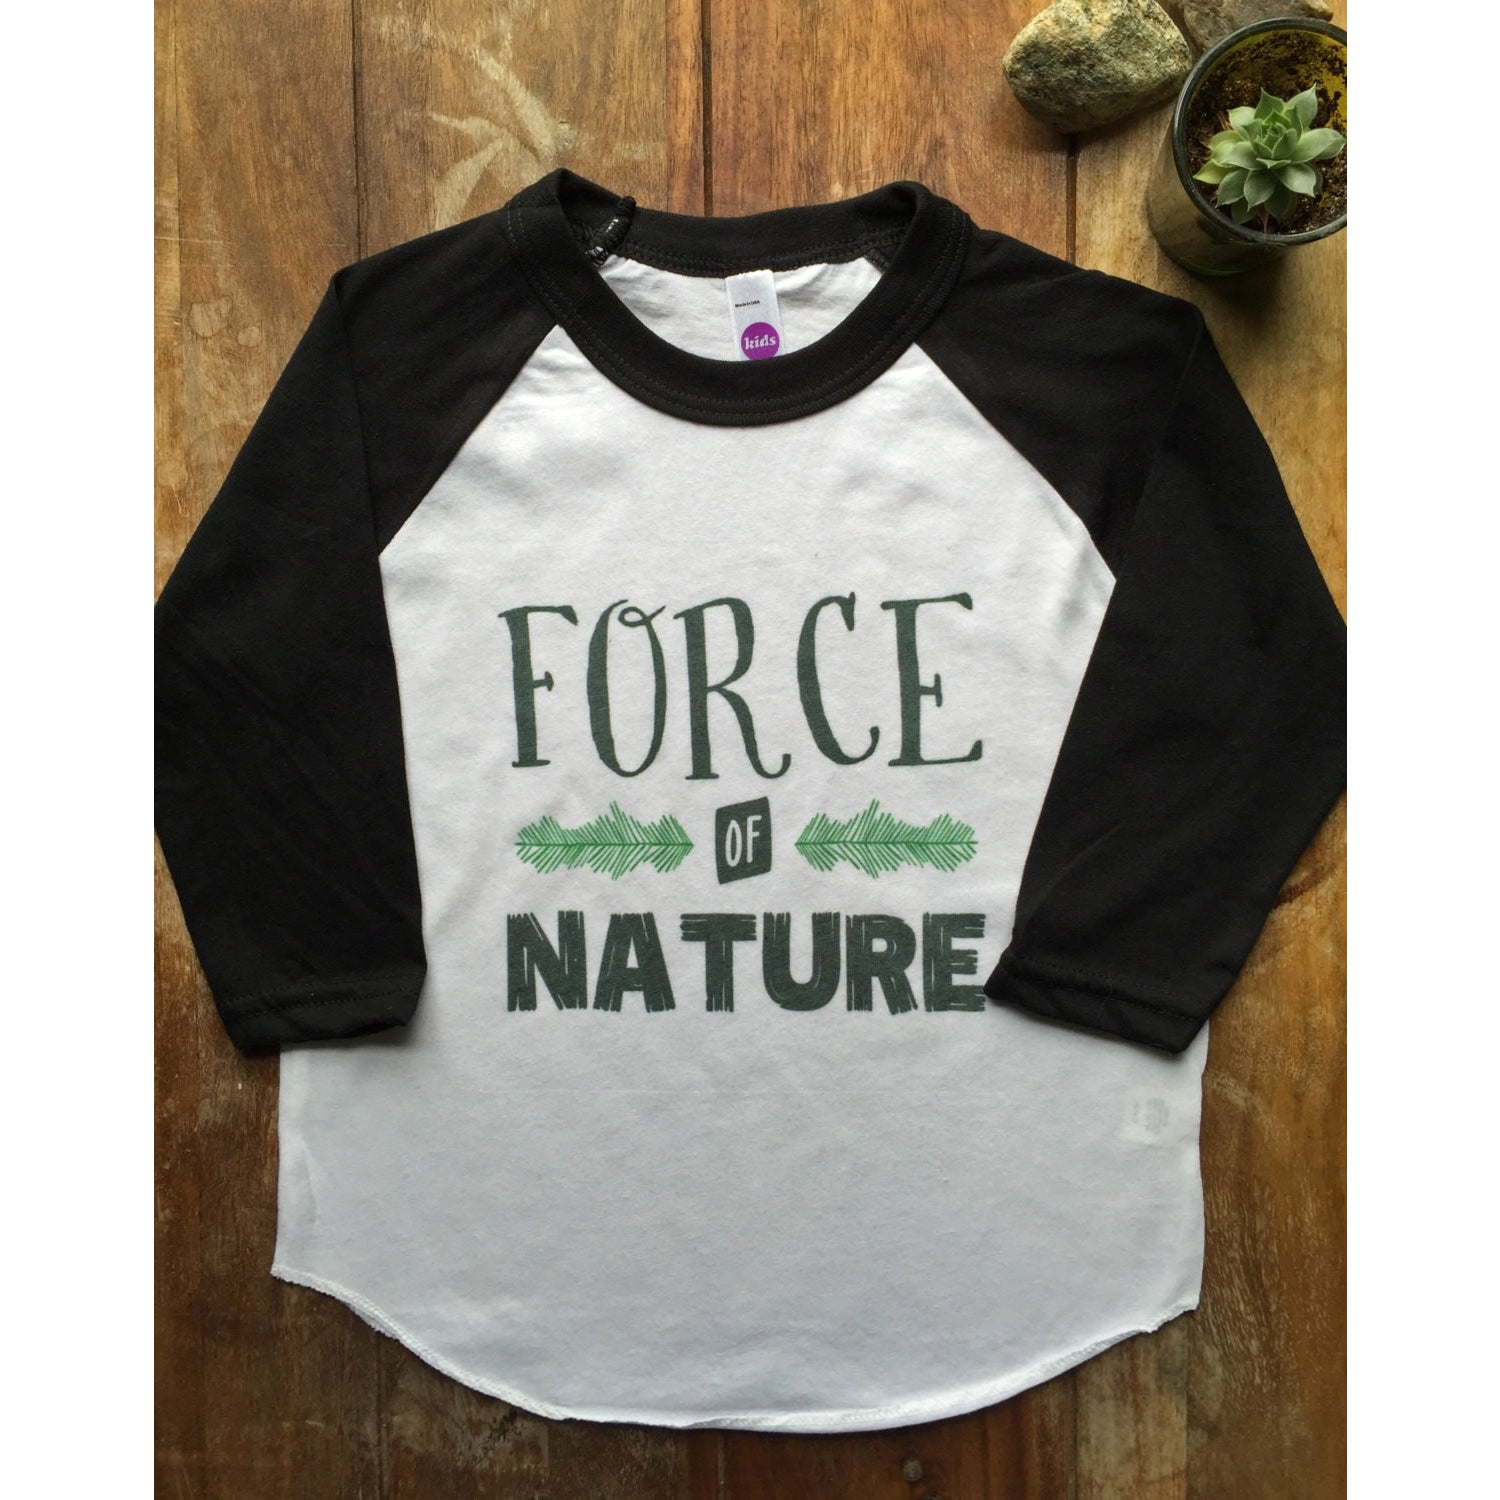 Force of Nature T-Shirt for kids-Hens and Chicas